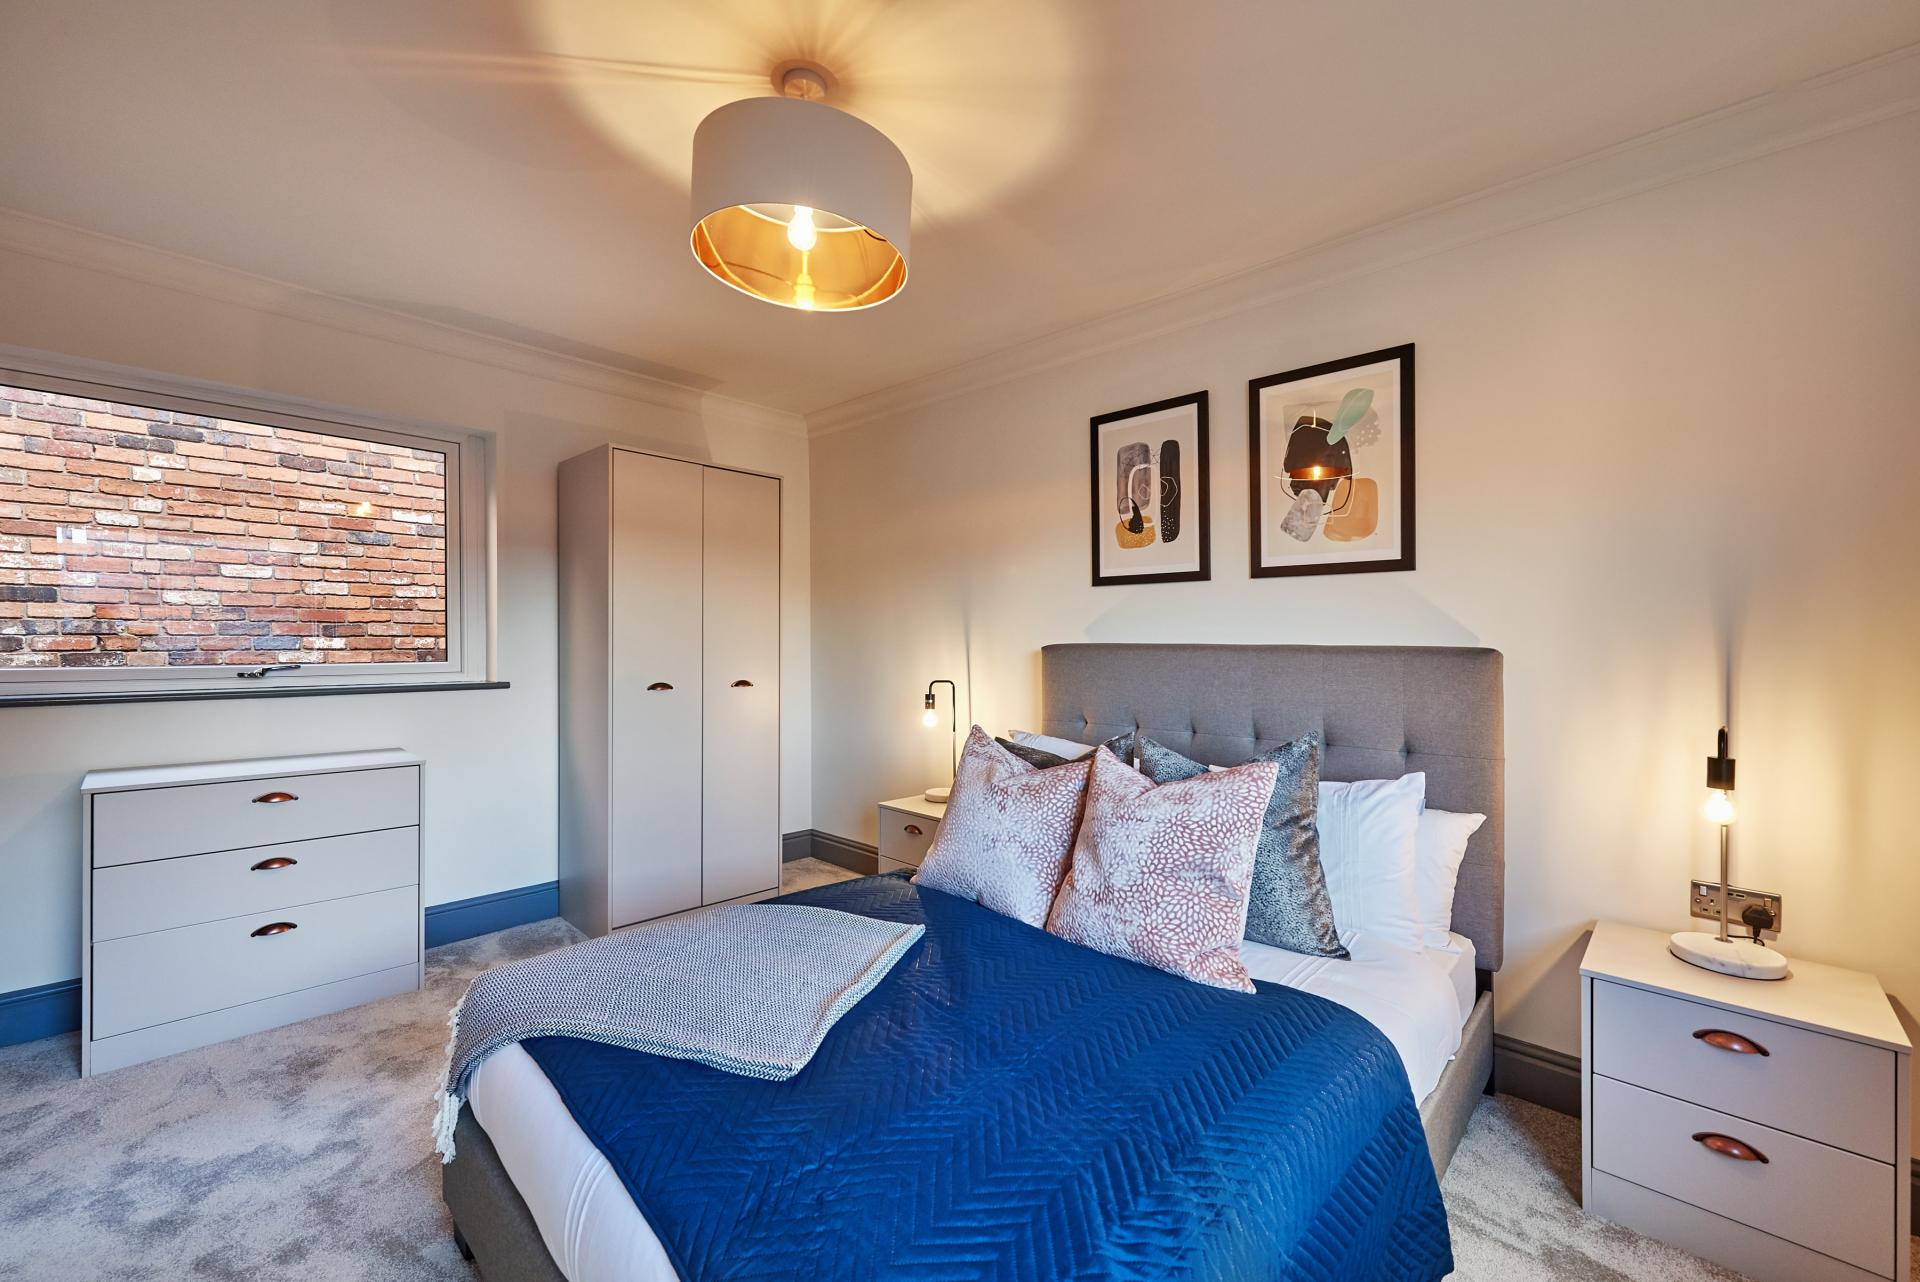 Bed at The St Paul's Residence, Jewellery Quarter, Birmingham - Citybase Apartments